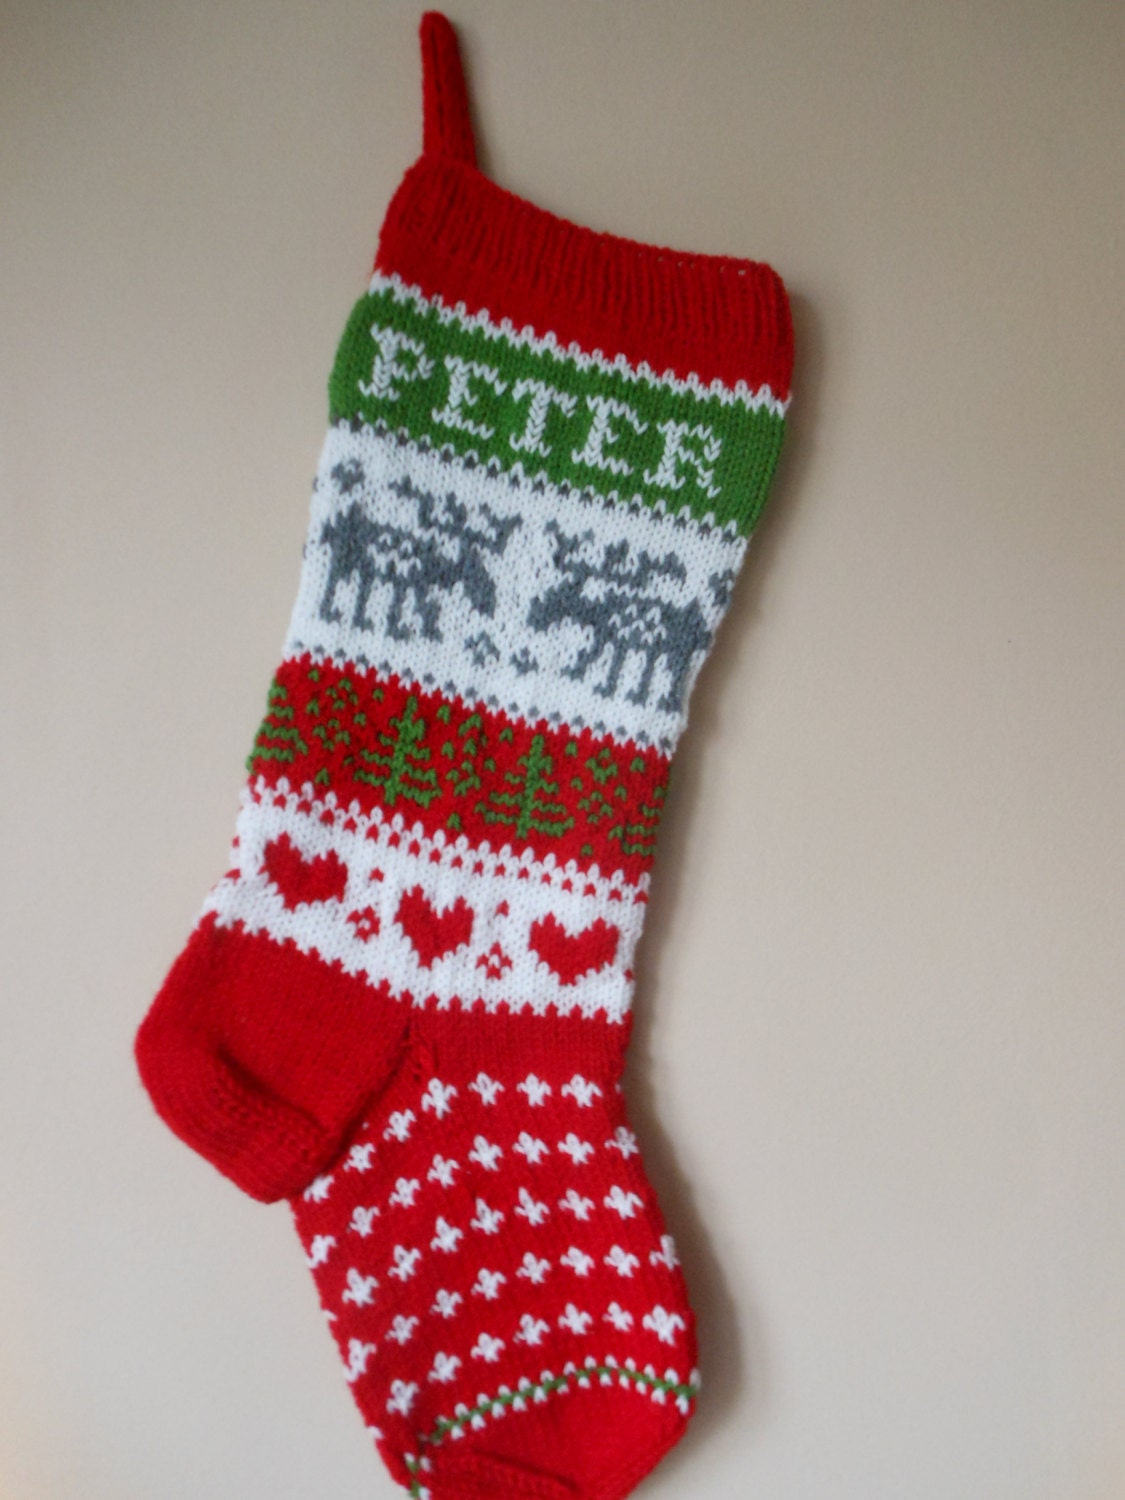 Knitting Pattern For Christmas Stocking Personalized : Personalized Christmas Stocking Hand Knitted With Reindeer